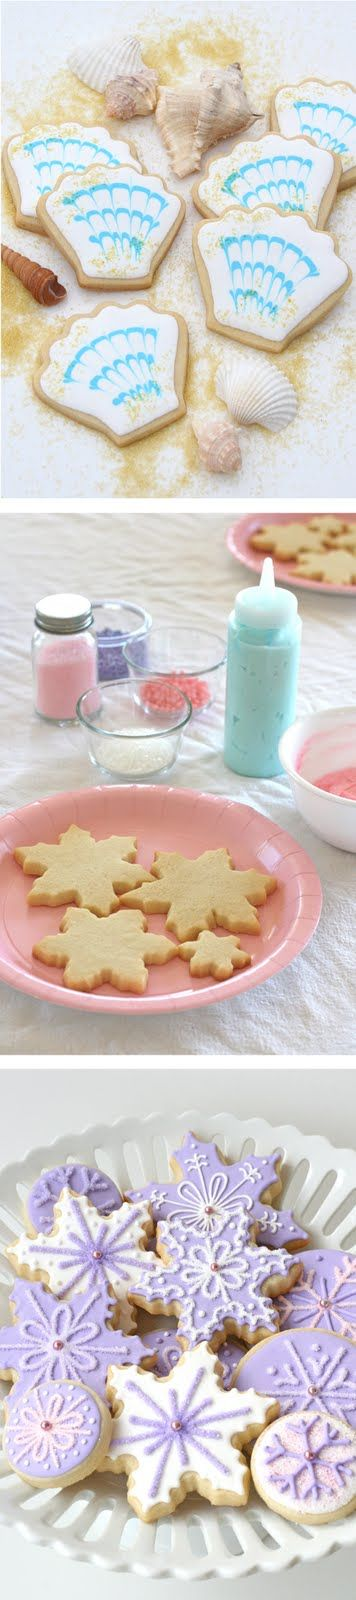 When I was growing up, I always enjoyed making sugar cookies at Christmas time. Even at a very young age I would spend half an hour carefully decorating a cookie, adding one sprinkle at a time. My sisters would have a whole plate of cookies decorated in the time I would decorate one or …